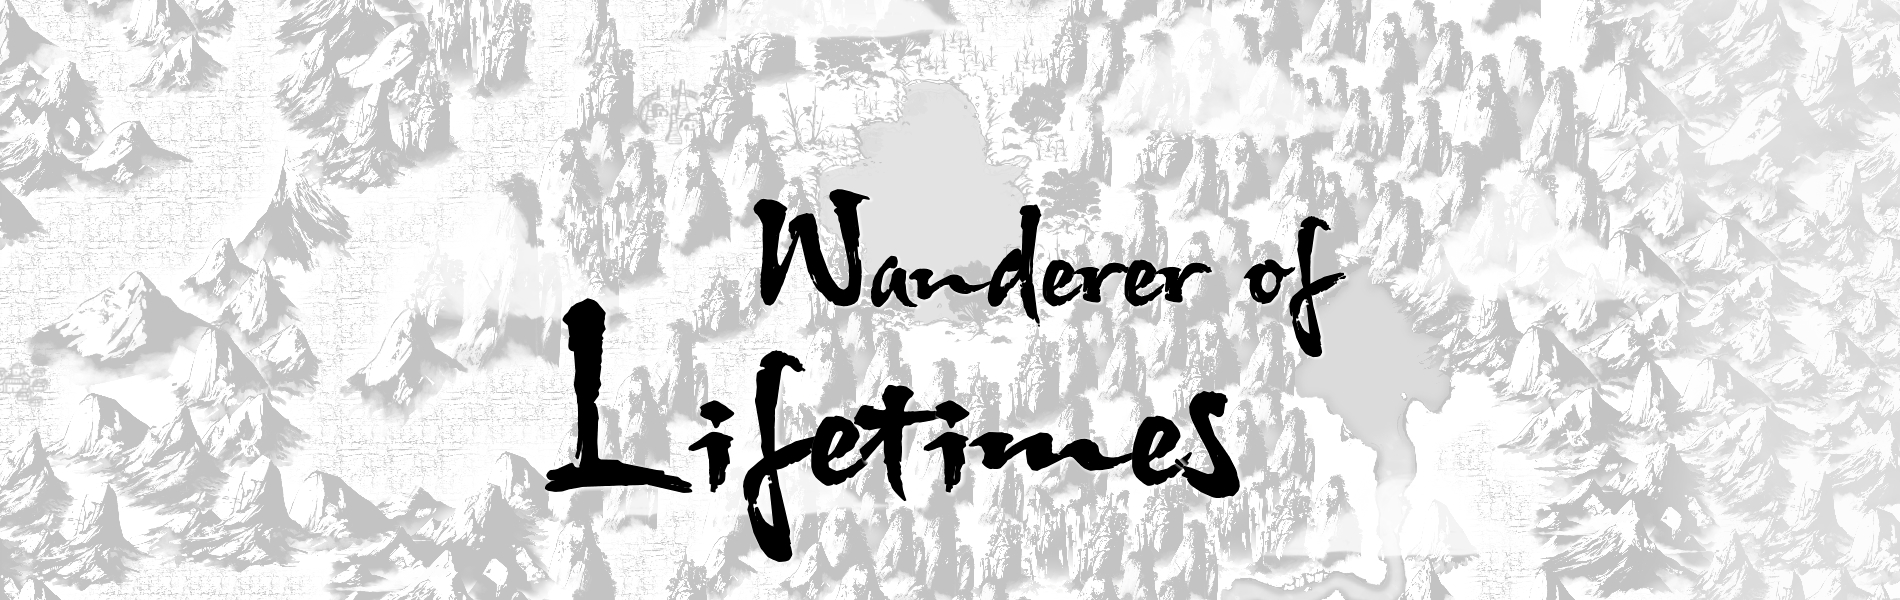 Wanderer of Lifetimes